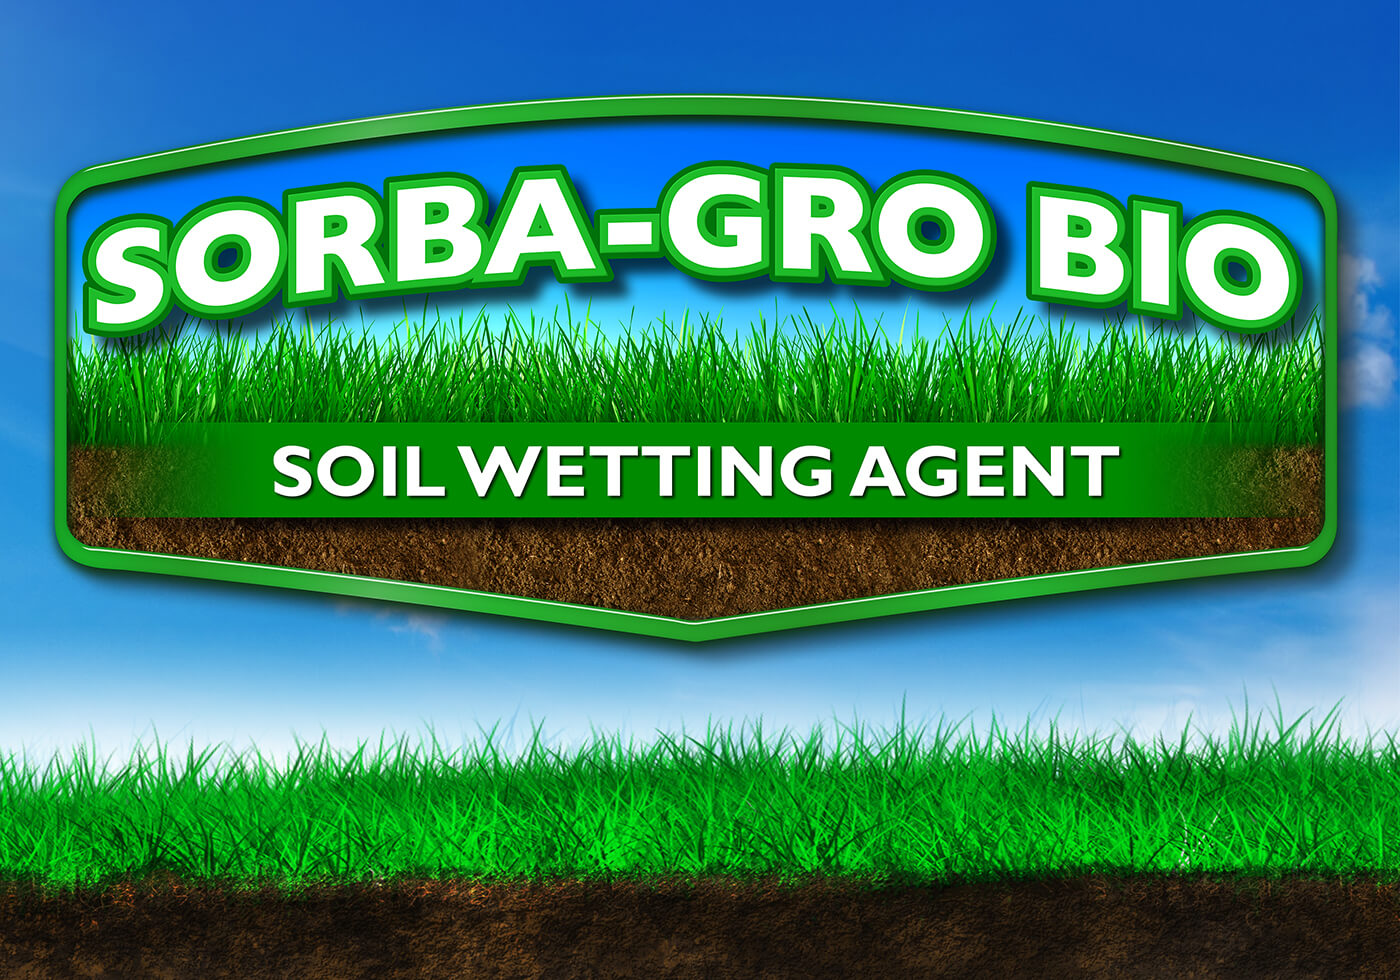 large green nutrasorb sorba grow bio logo soil wetting agent over blue sky background grass and dirt